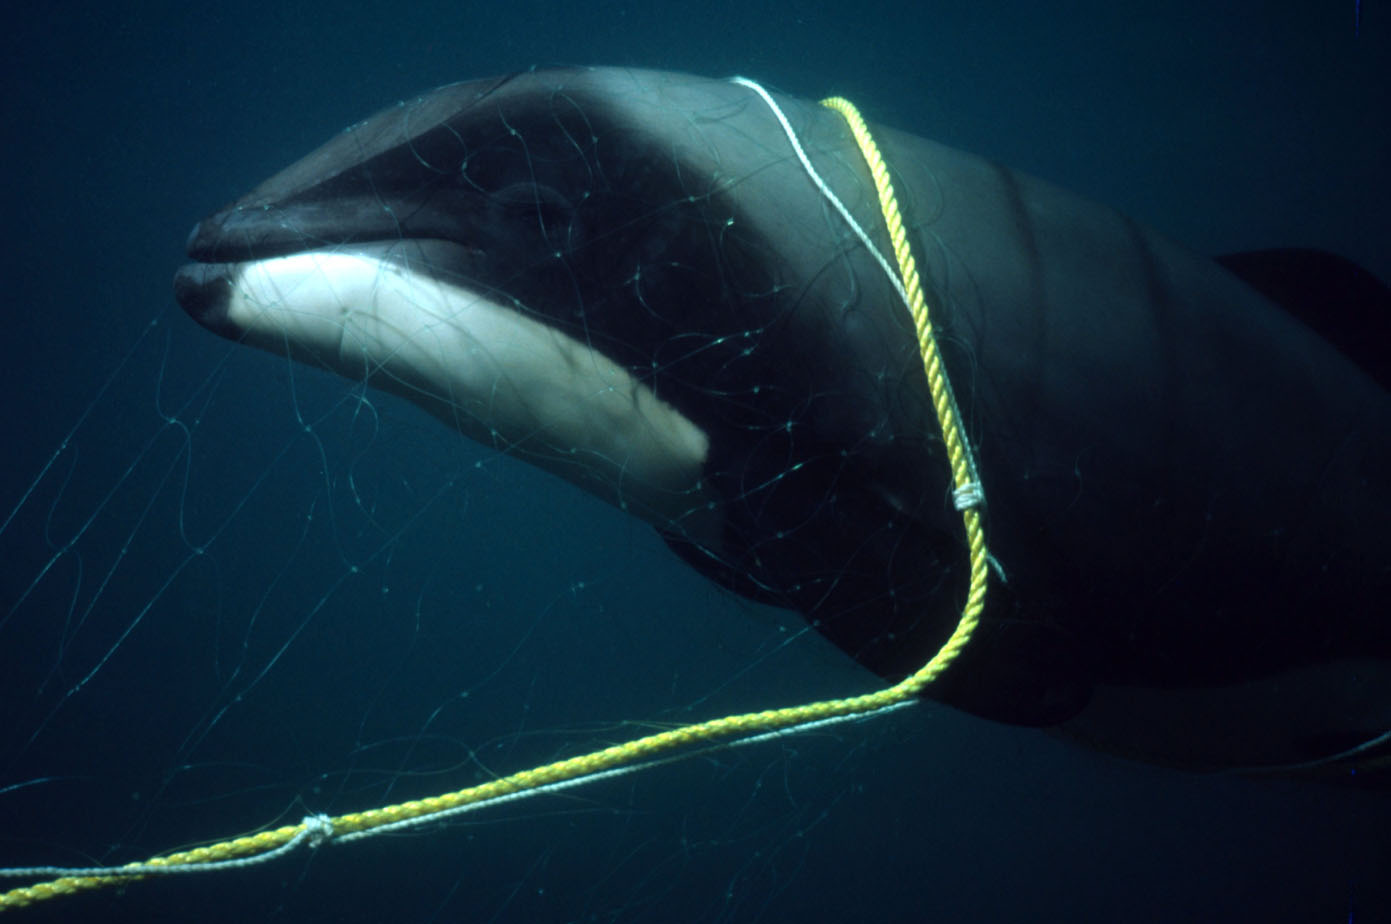 Hector's dolphin caught in fishing net, New Zealand. © Stephen Dawson / WWF